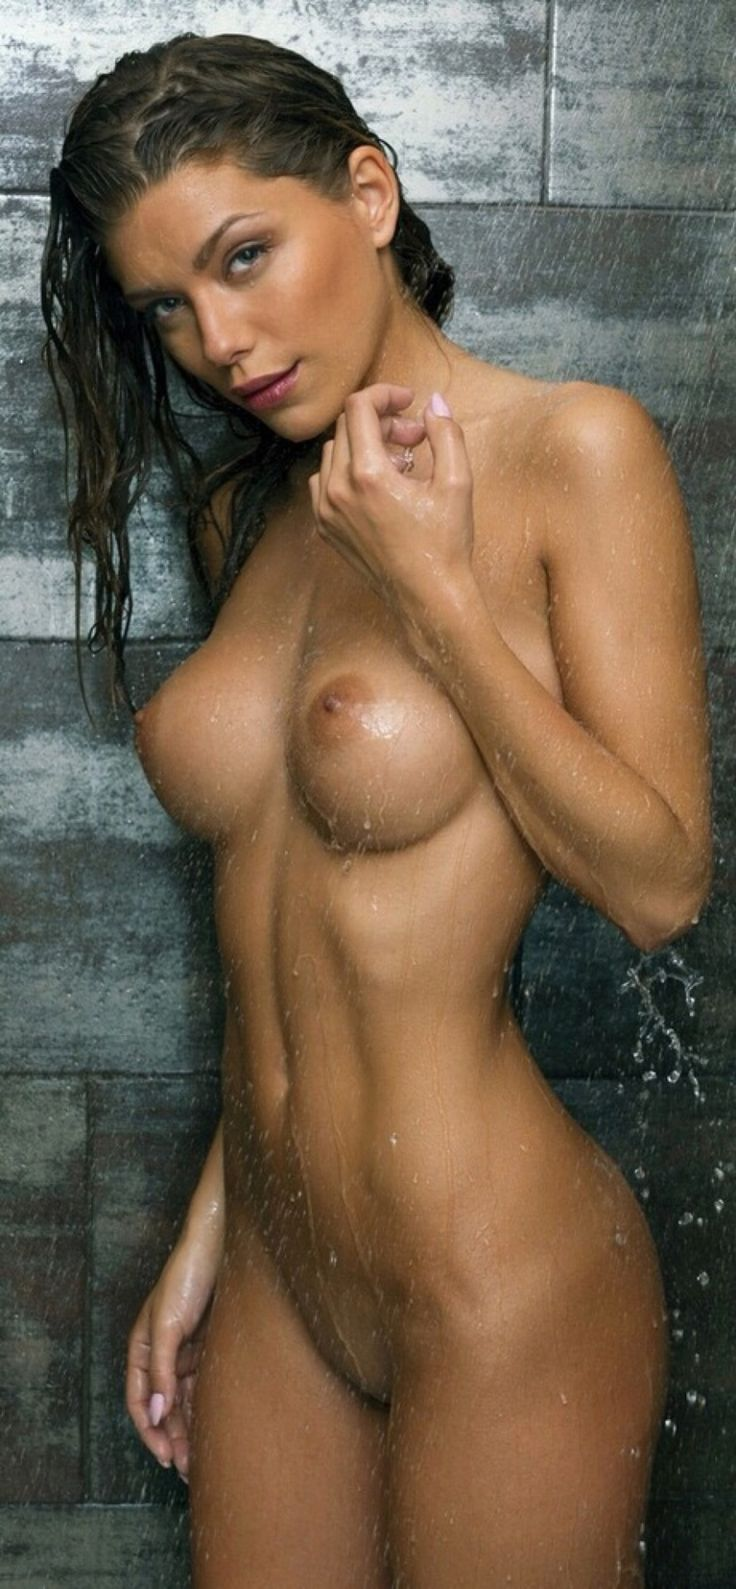 Hot wet sexy girls nude